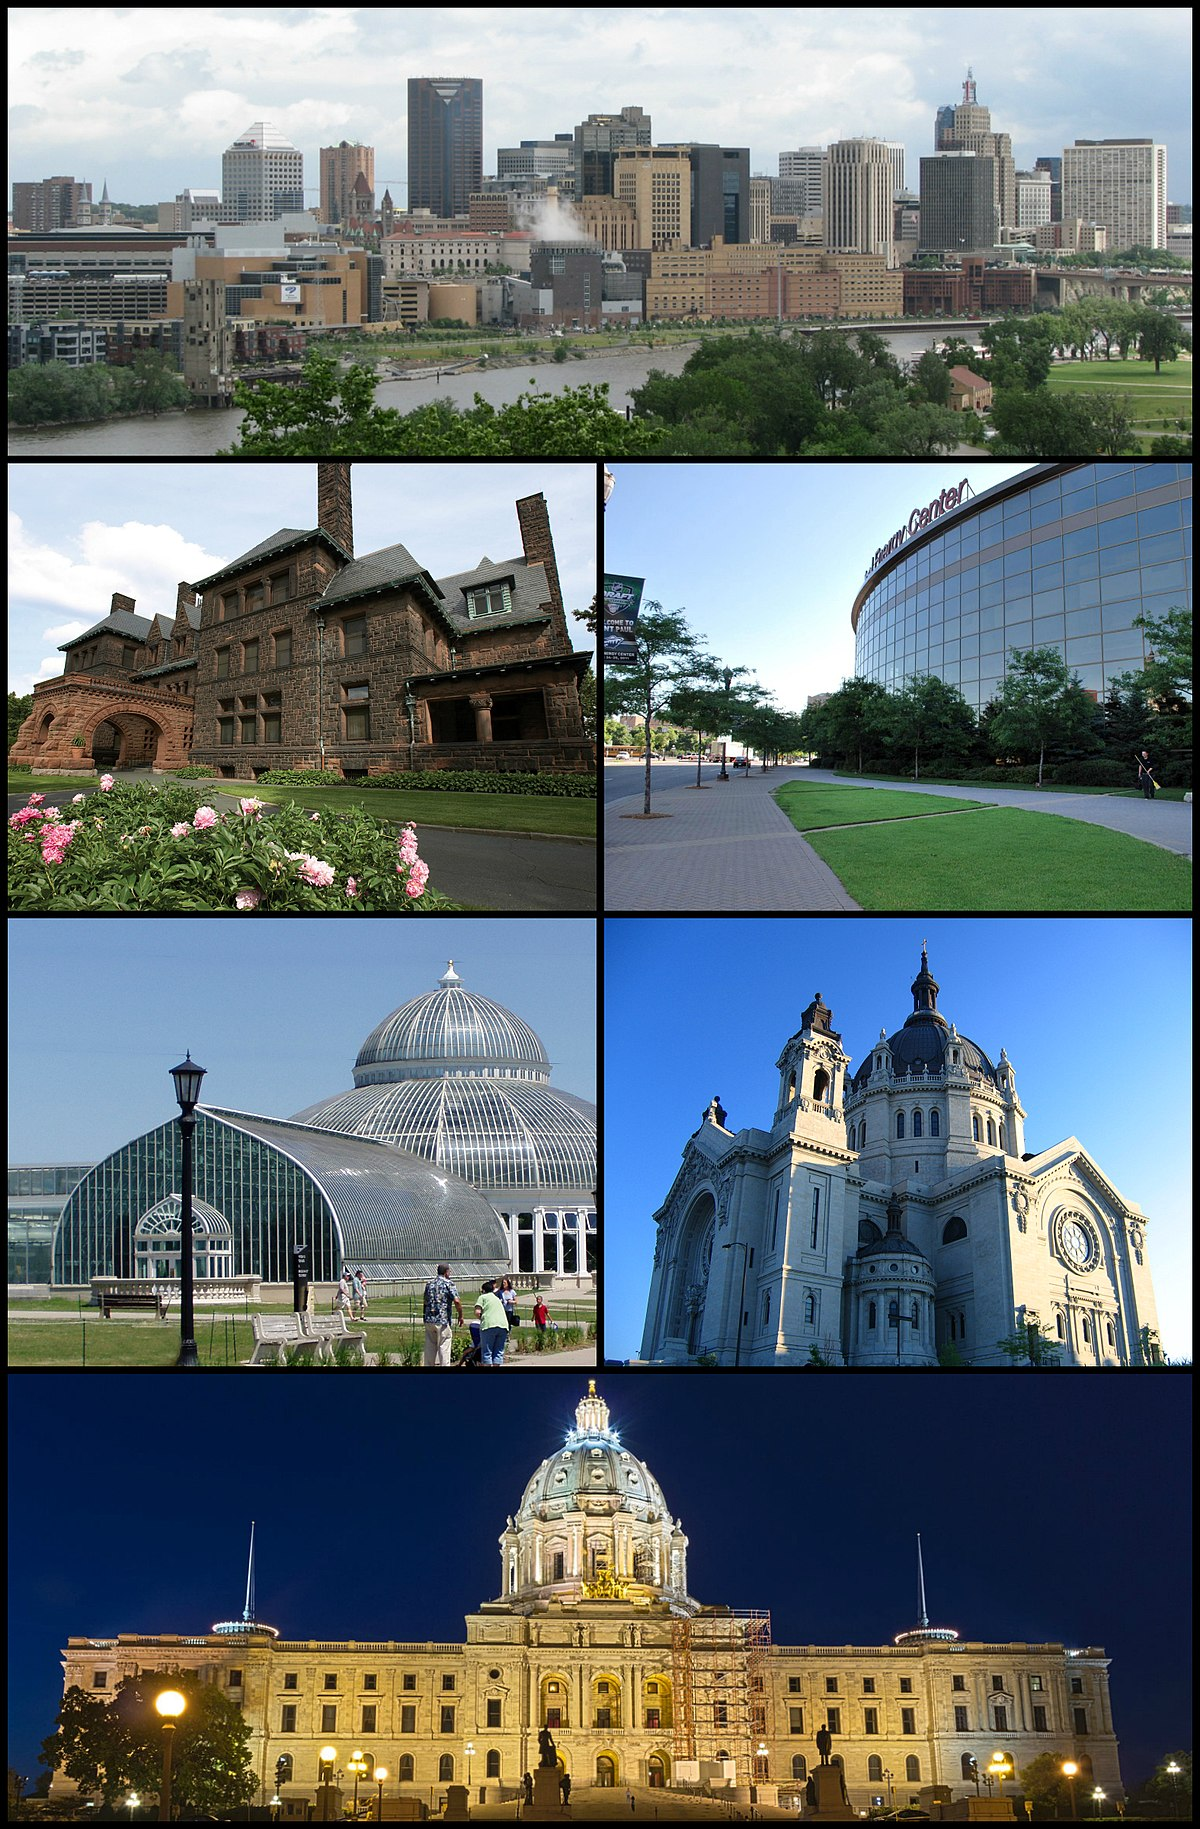 Saint Paul Minnesota Wikipedia - 10 things to see and do in minneapolis saint paul